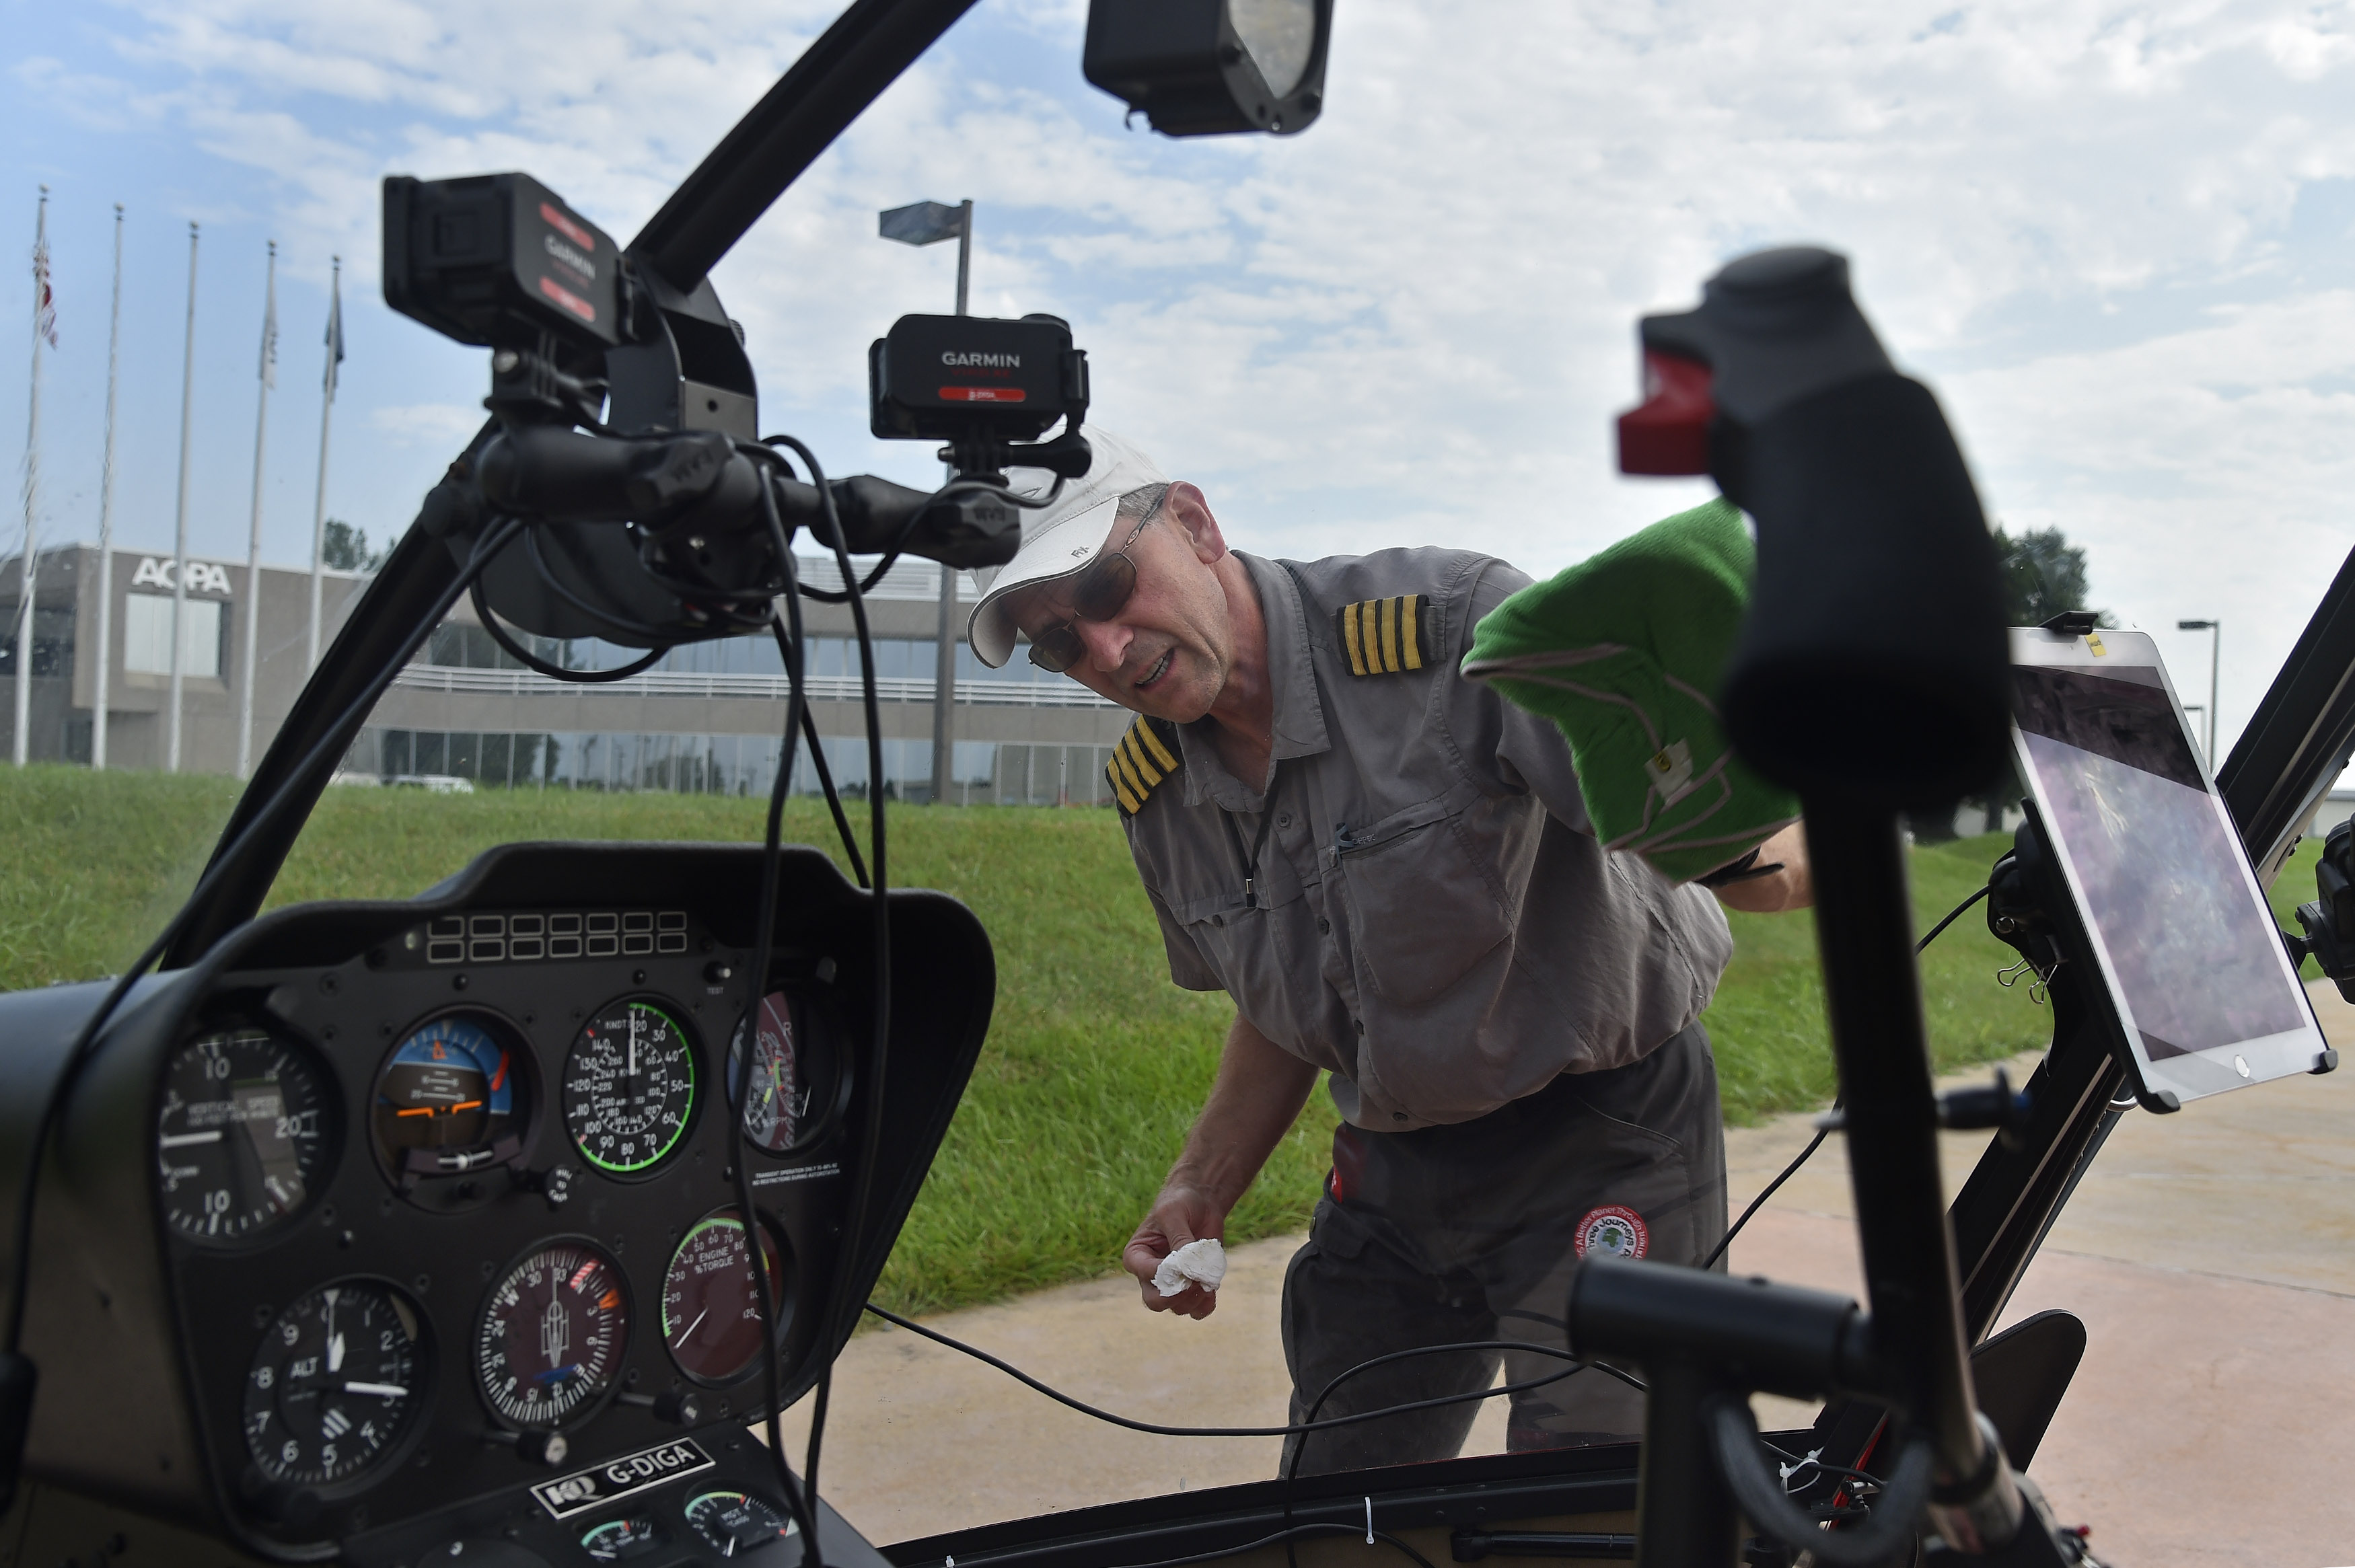 British helicopter pilot Peter Wilson cleans the windscreen during a stop at AOPA headquarters in Frederick, Maryland, as they entered the final quarter of a world-spanning flight in a Robinson R-66. Photo by David Tulis.